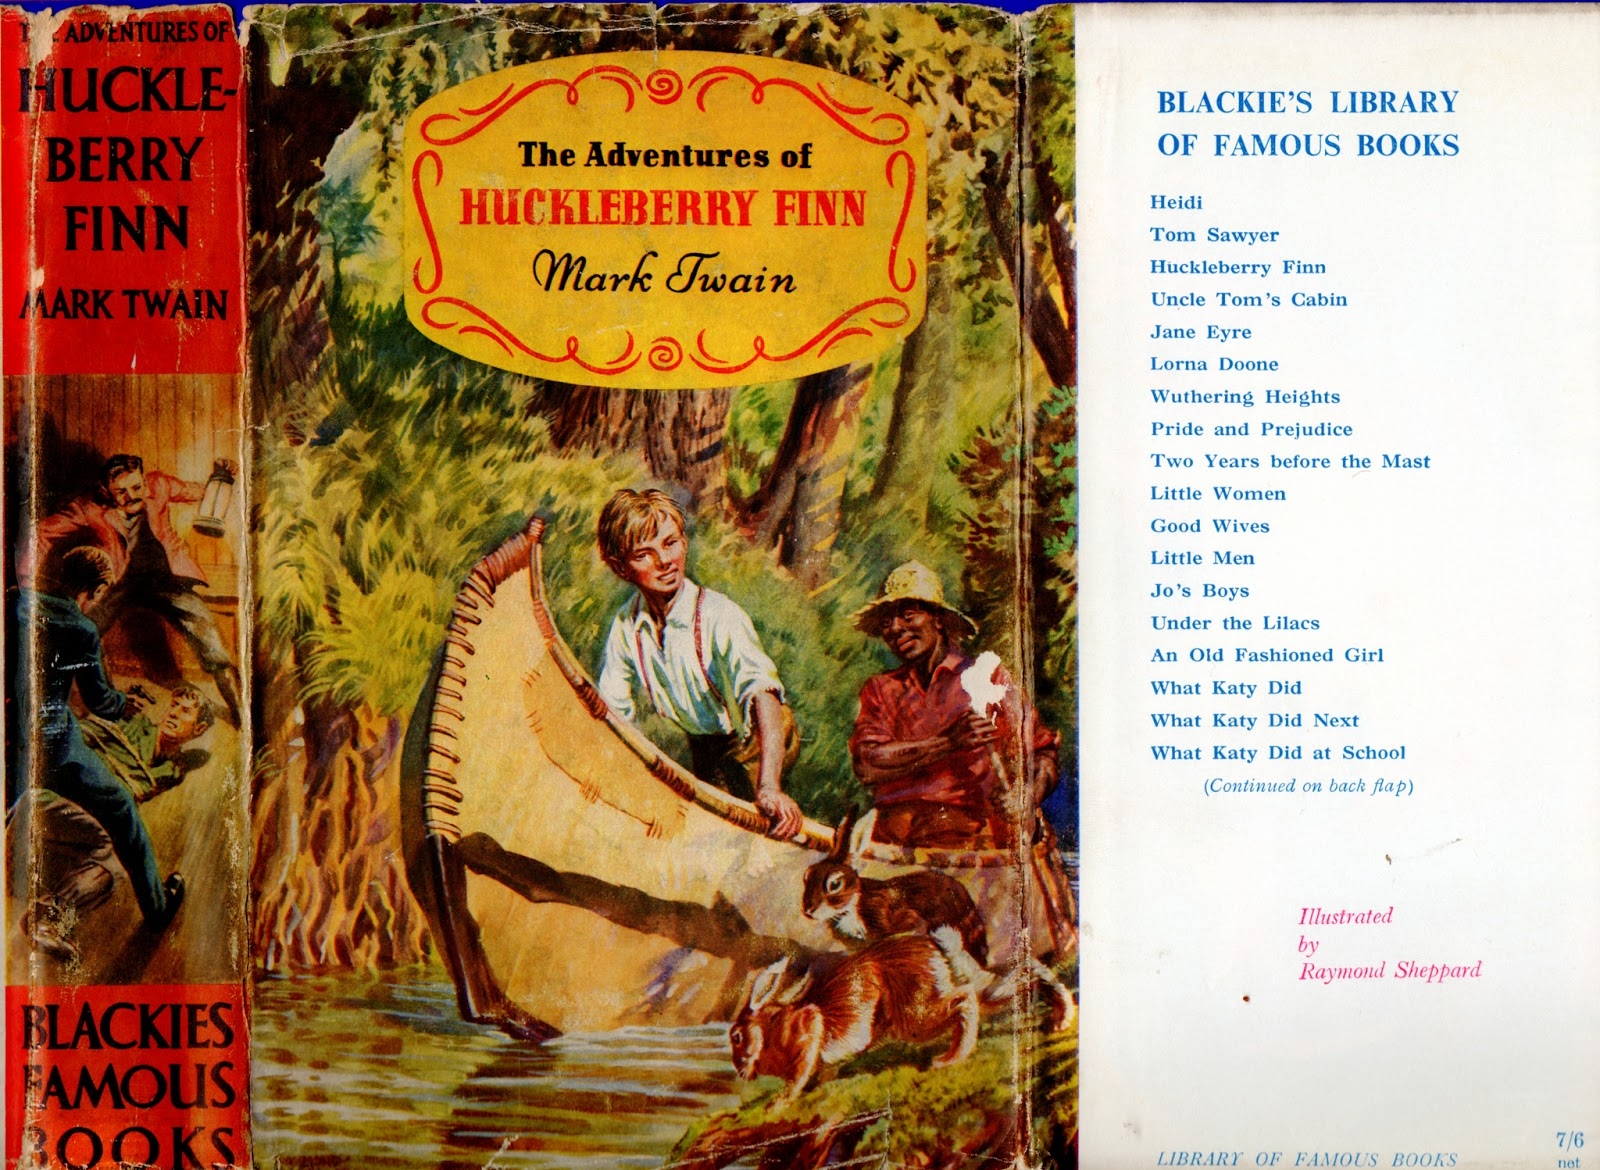 a brief review of mark twains book adventures of huckleberry finn Mark twain's adventures of huckleberry finn is one of the most celebrated novels in american literature--arguably the greatest novel in american literature as such, the book is frequently taught in high school english, college literature classes, american history classes, and every other opportunity teachers can find.